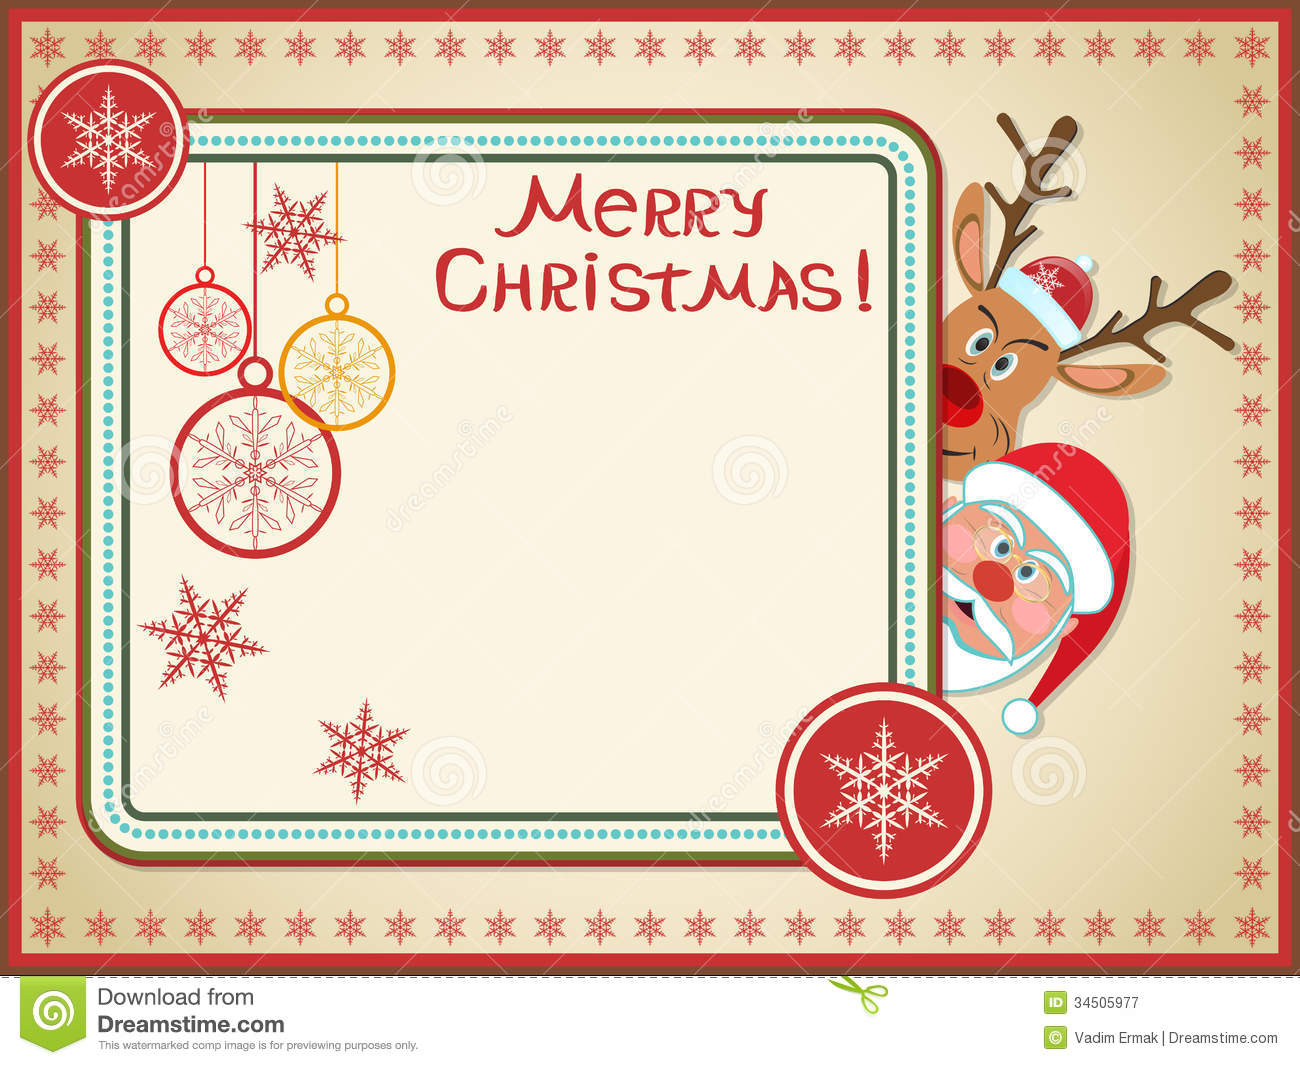 Retro Christmas Card Royalty Free Stock Photography - Image: 34505977